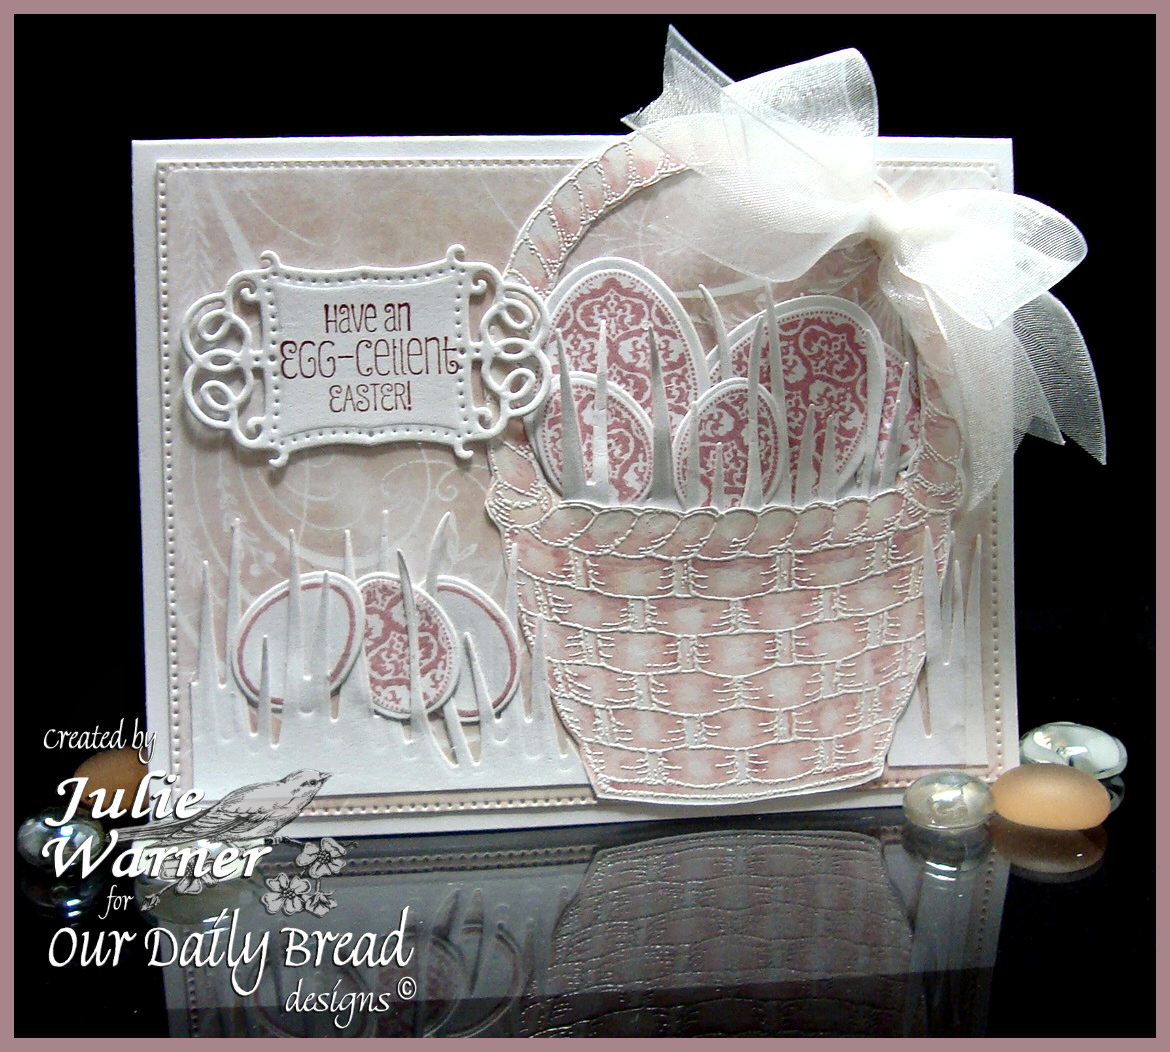 Stamps - Our Daily Bread Designs Basket of Blessings, Blessed Easter, ODBD Shabby Rose Paper Collection, ODBD Custom Eggs Dies, ODBD Custom Grass Border Dies, ODBD Custom Vintage Flourish Pattern Die, ODBD Custom Flourish Star Pattern Die